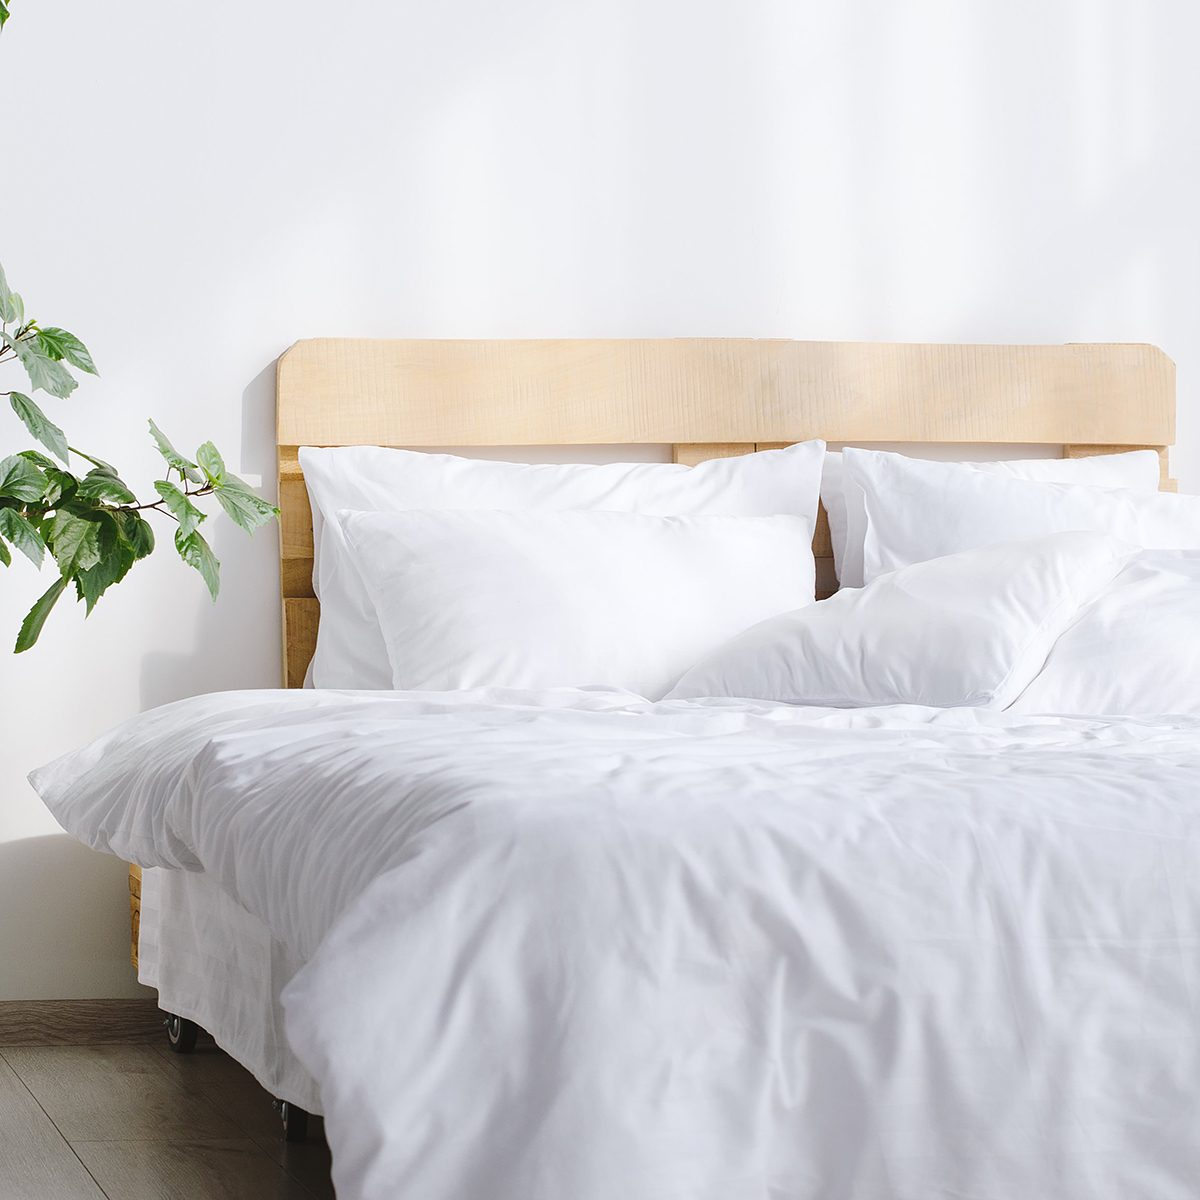 Bed with white sheets